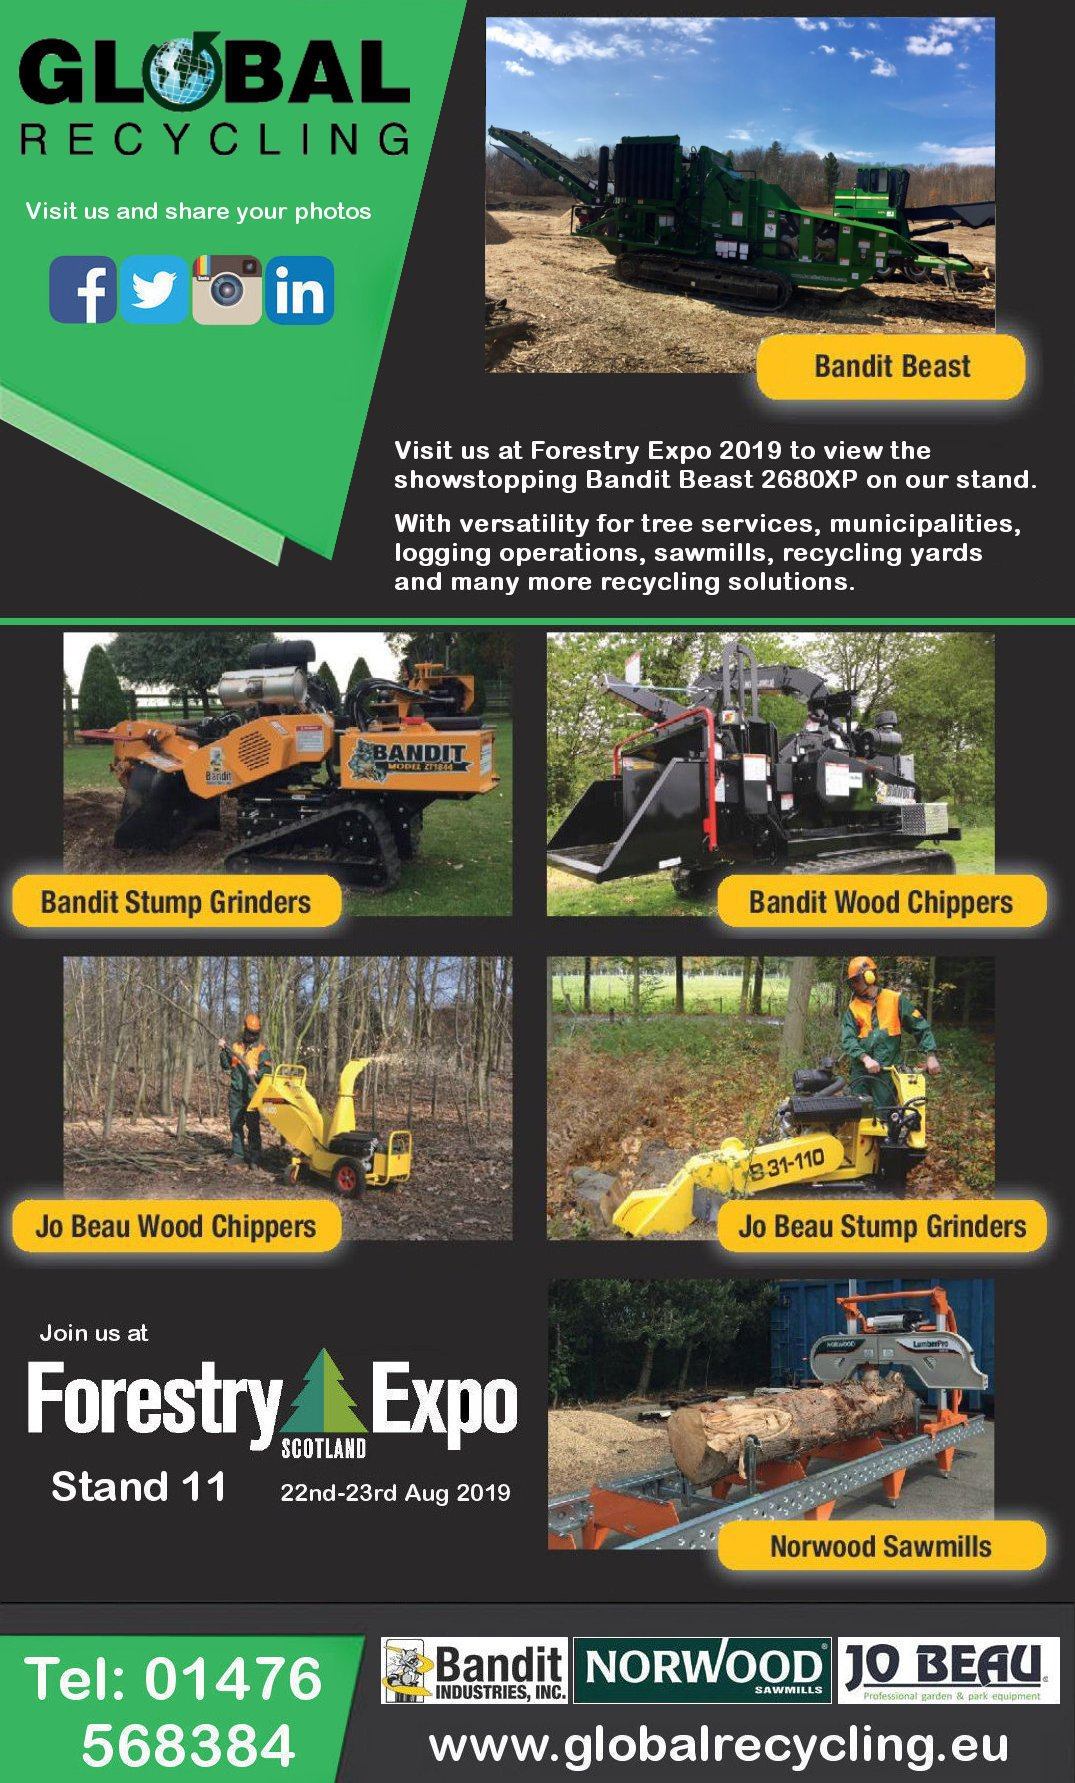 Forestry Expo 2019 and The Beast 2680